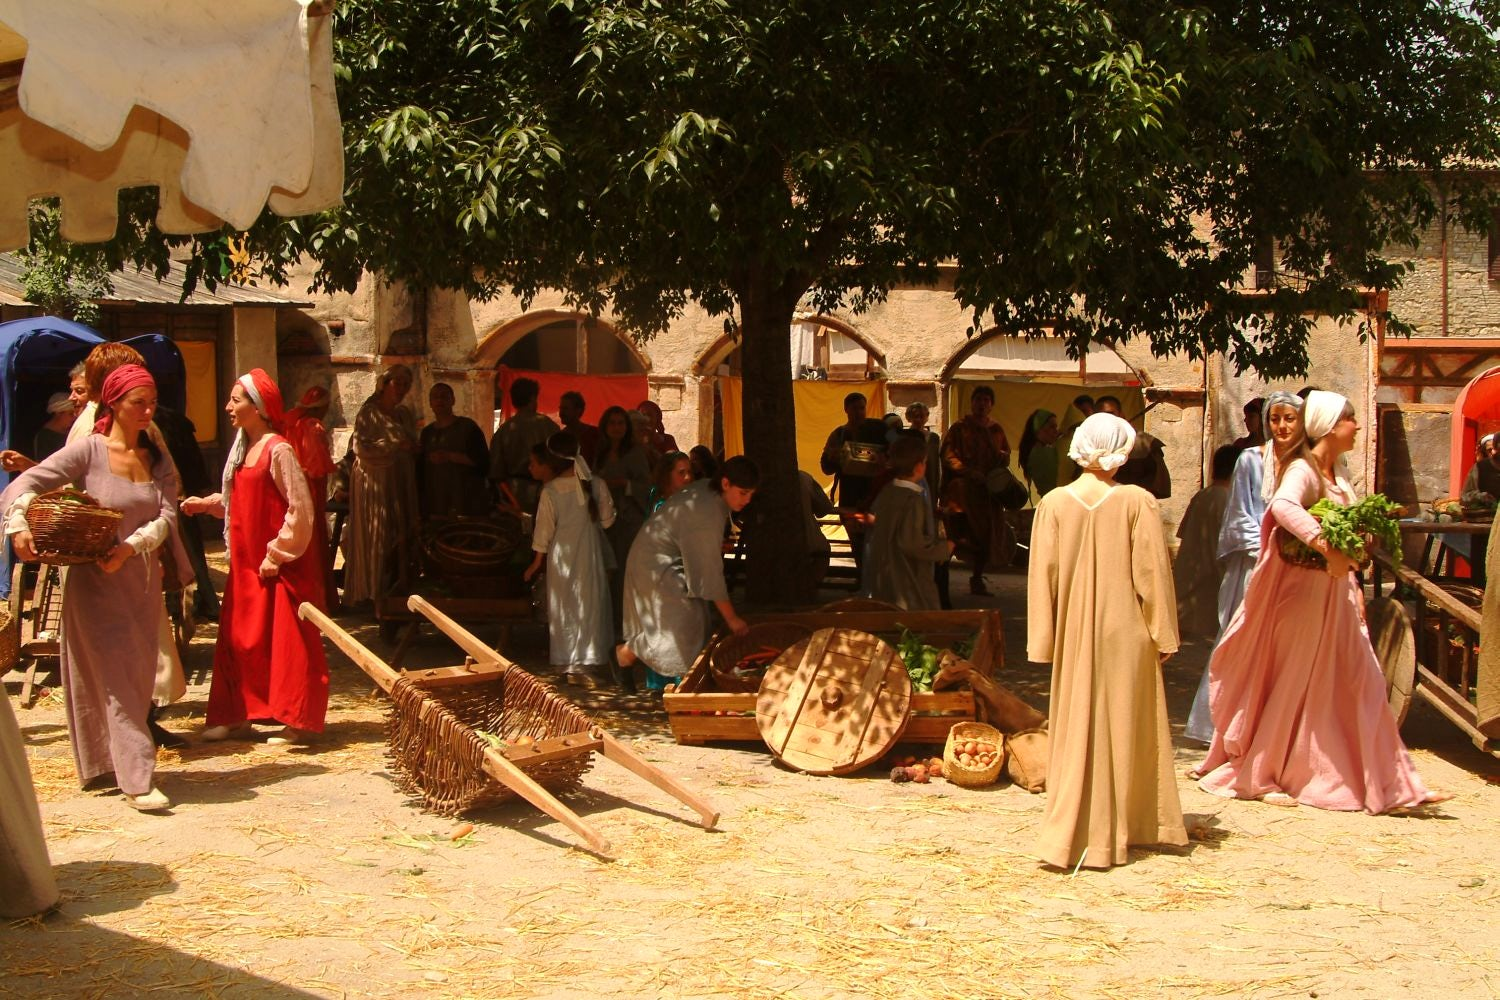 Mercato delle Gaite, Medieval Daily Life in Bevagna